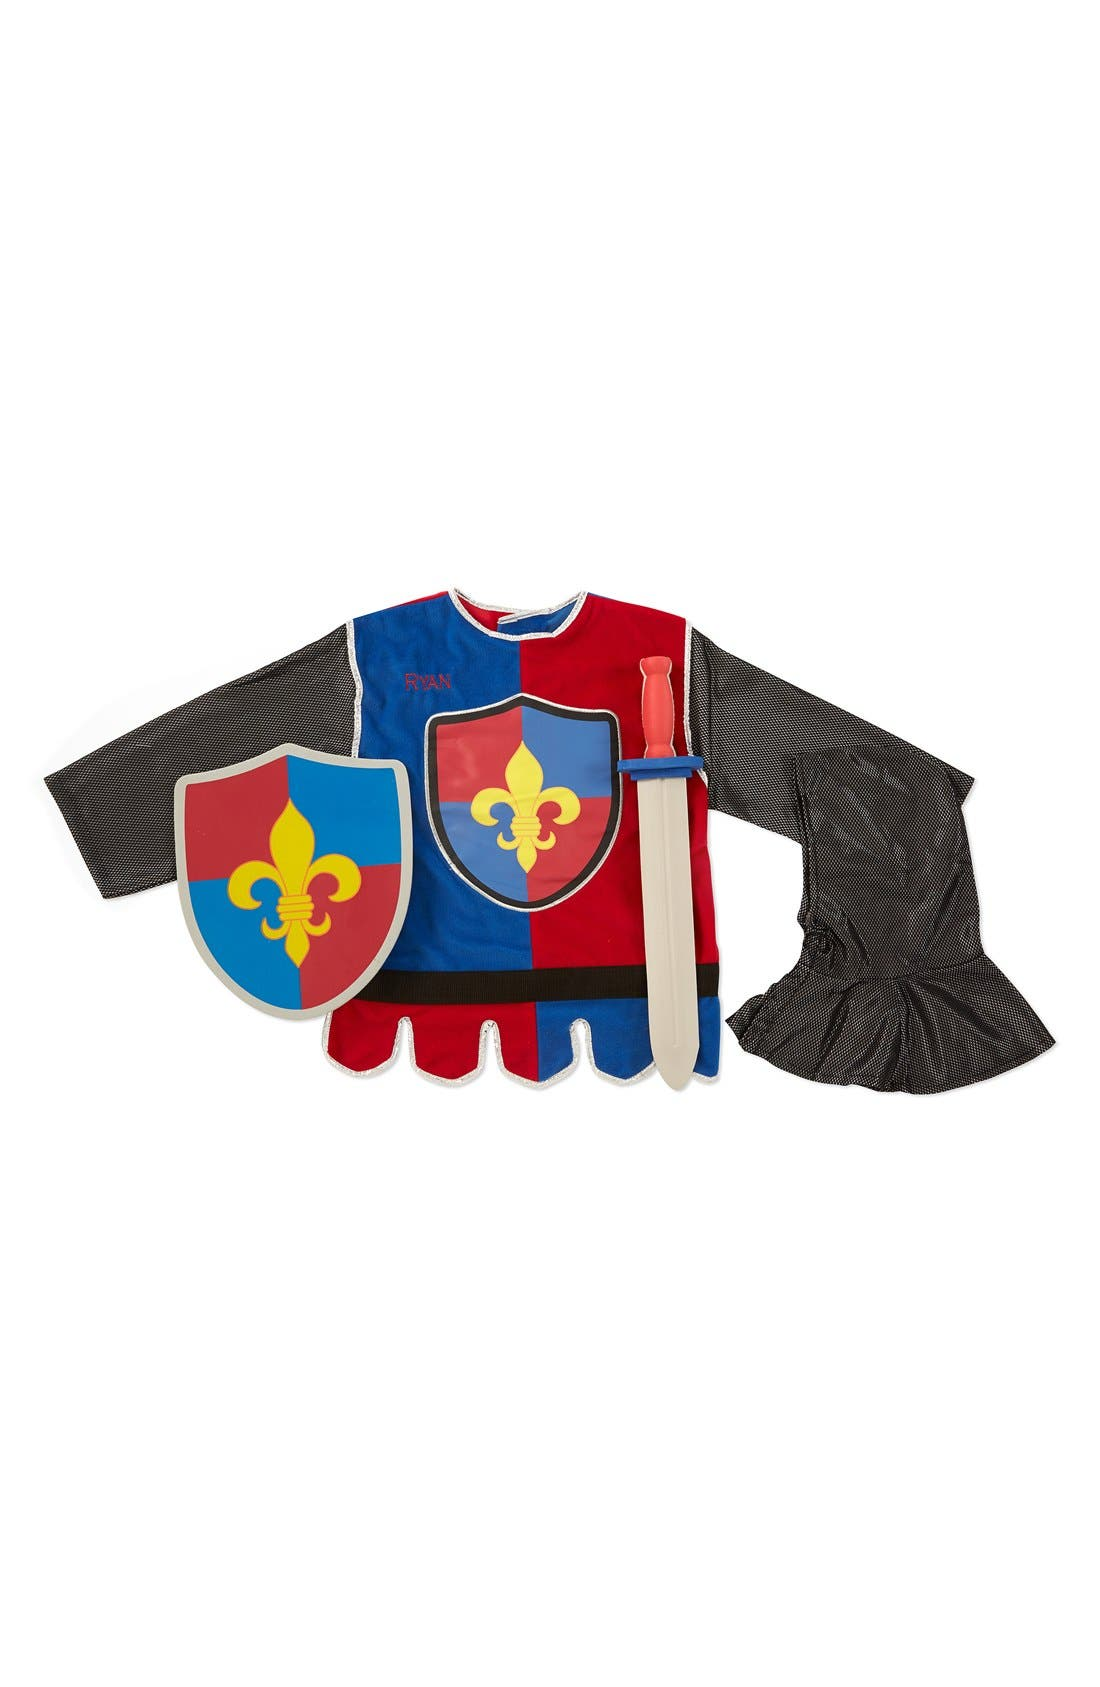 'Knight' Personalized Costume Set,                             Main thumbnail 1, color,                             600